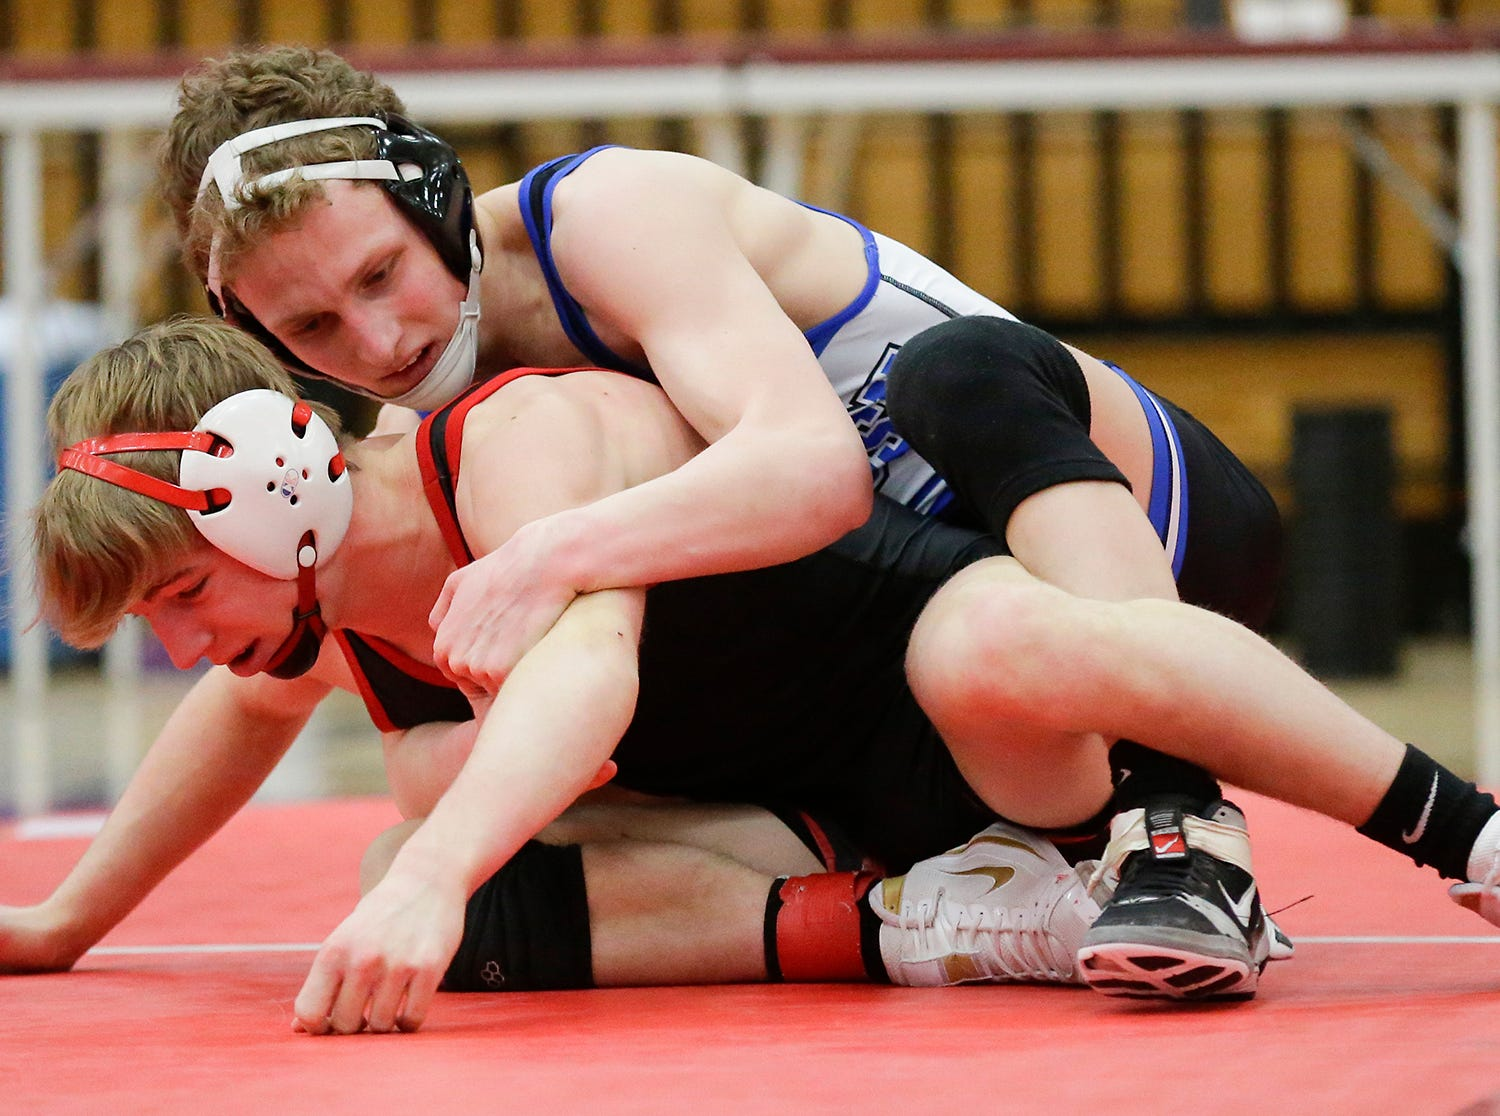 Kimberly High School's Max Sanderfoot wrestles Oshkosh West High School's Logan Grota in a 132-pound match during the Fox Valley Association wrestling championship meet held Saturday, Feb. 2, 2019, in Fond du Lac. Sanderfoot won the match by a pin.